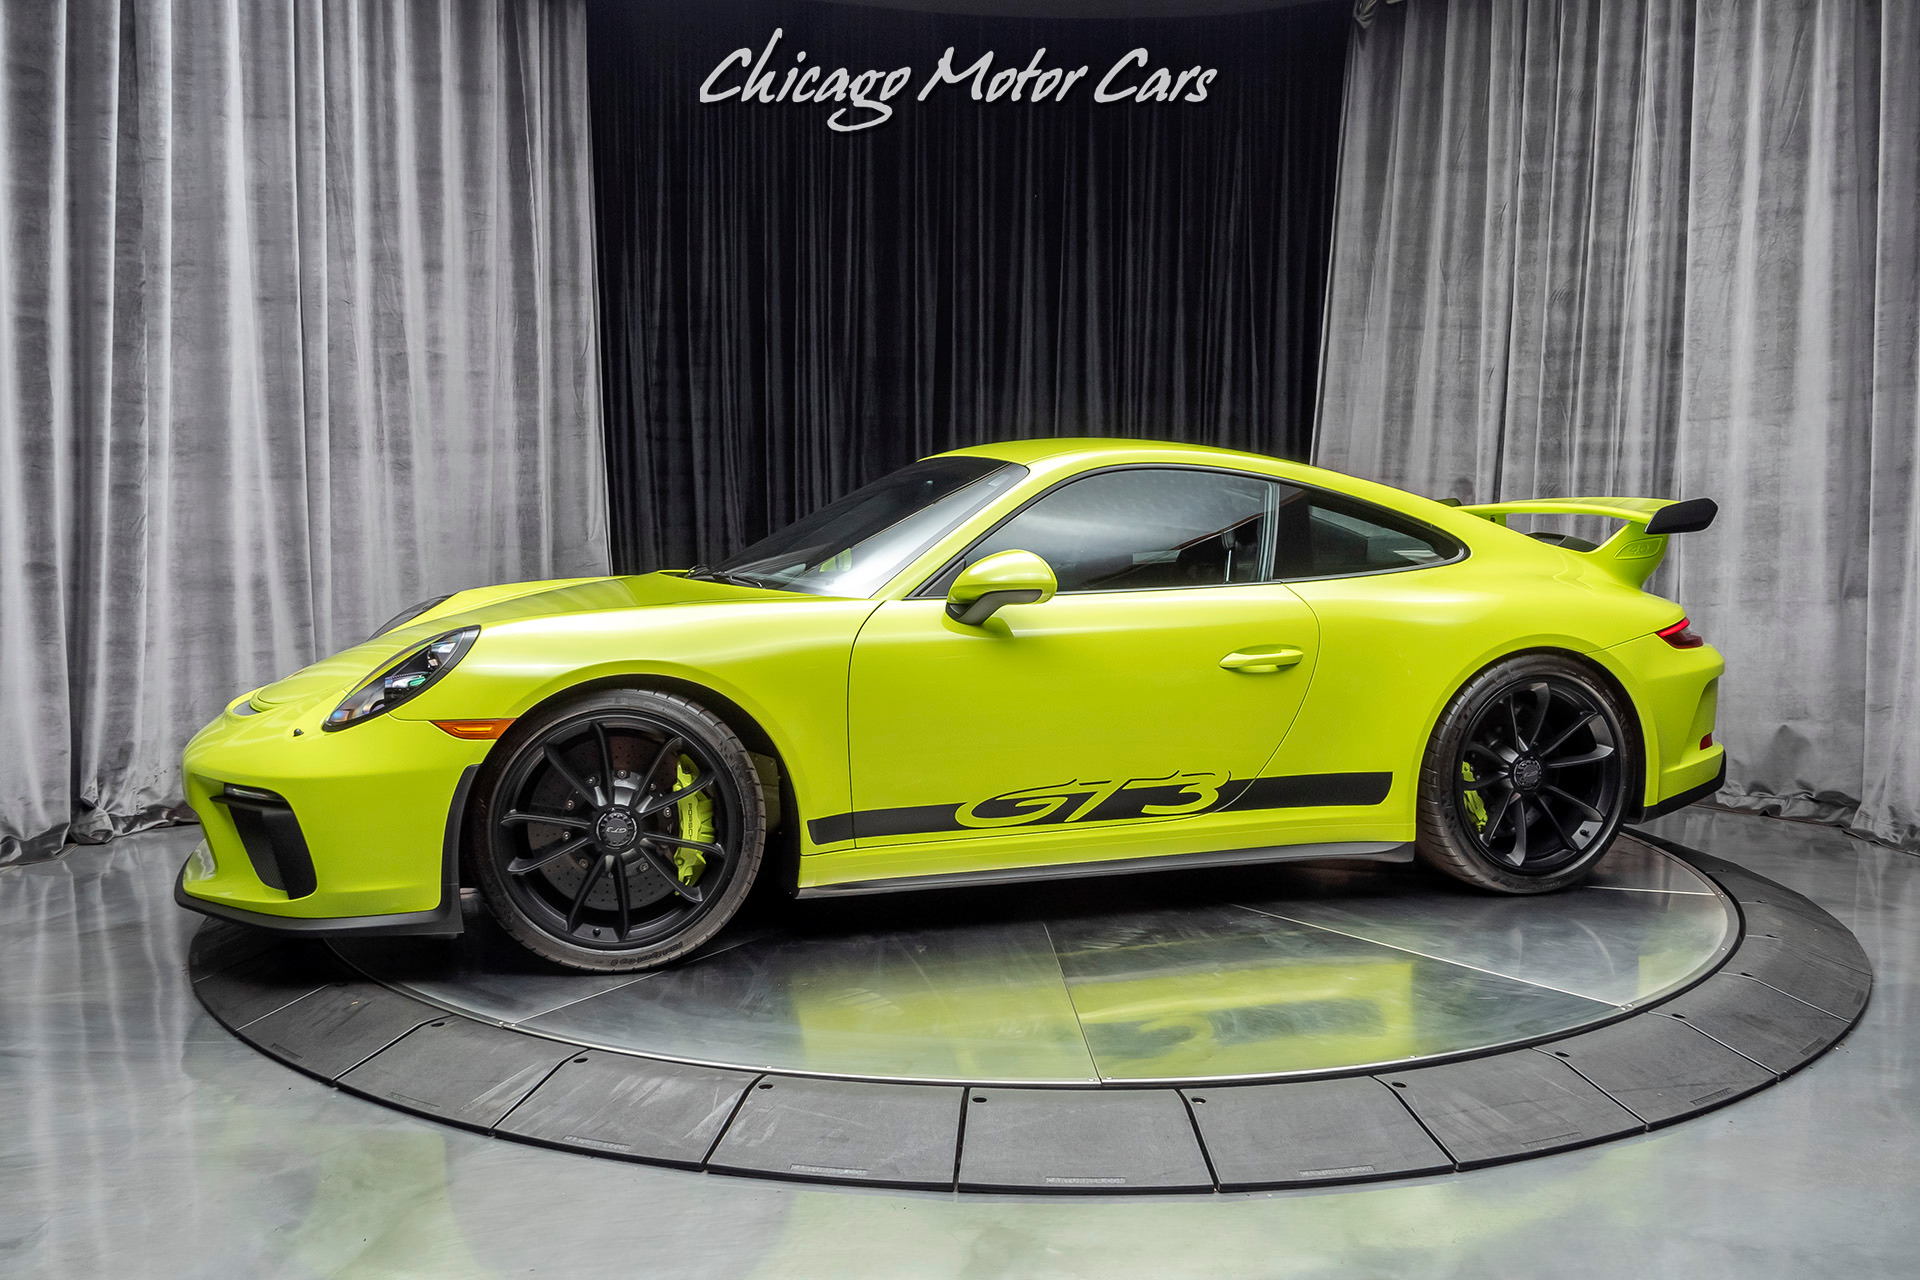 Used-2018-Porsche-911-GT3-Manual-Transmission-CXX-Options-Collector-Quality-HIGH-MSRP